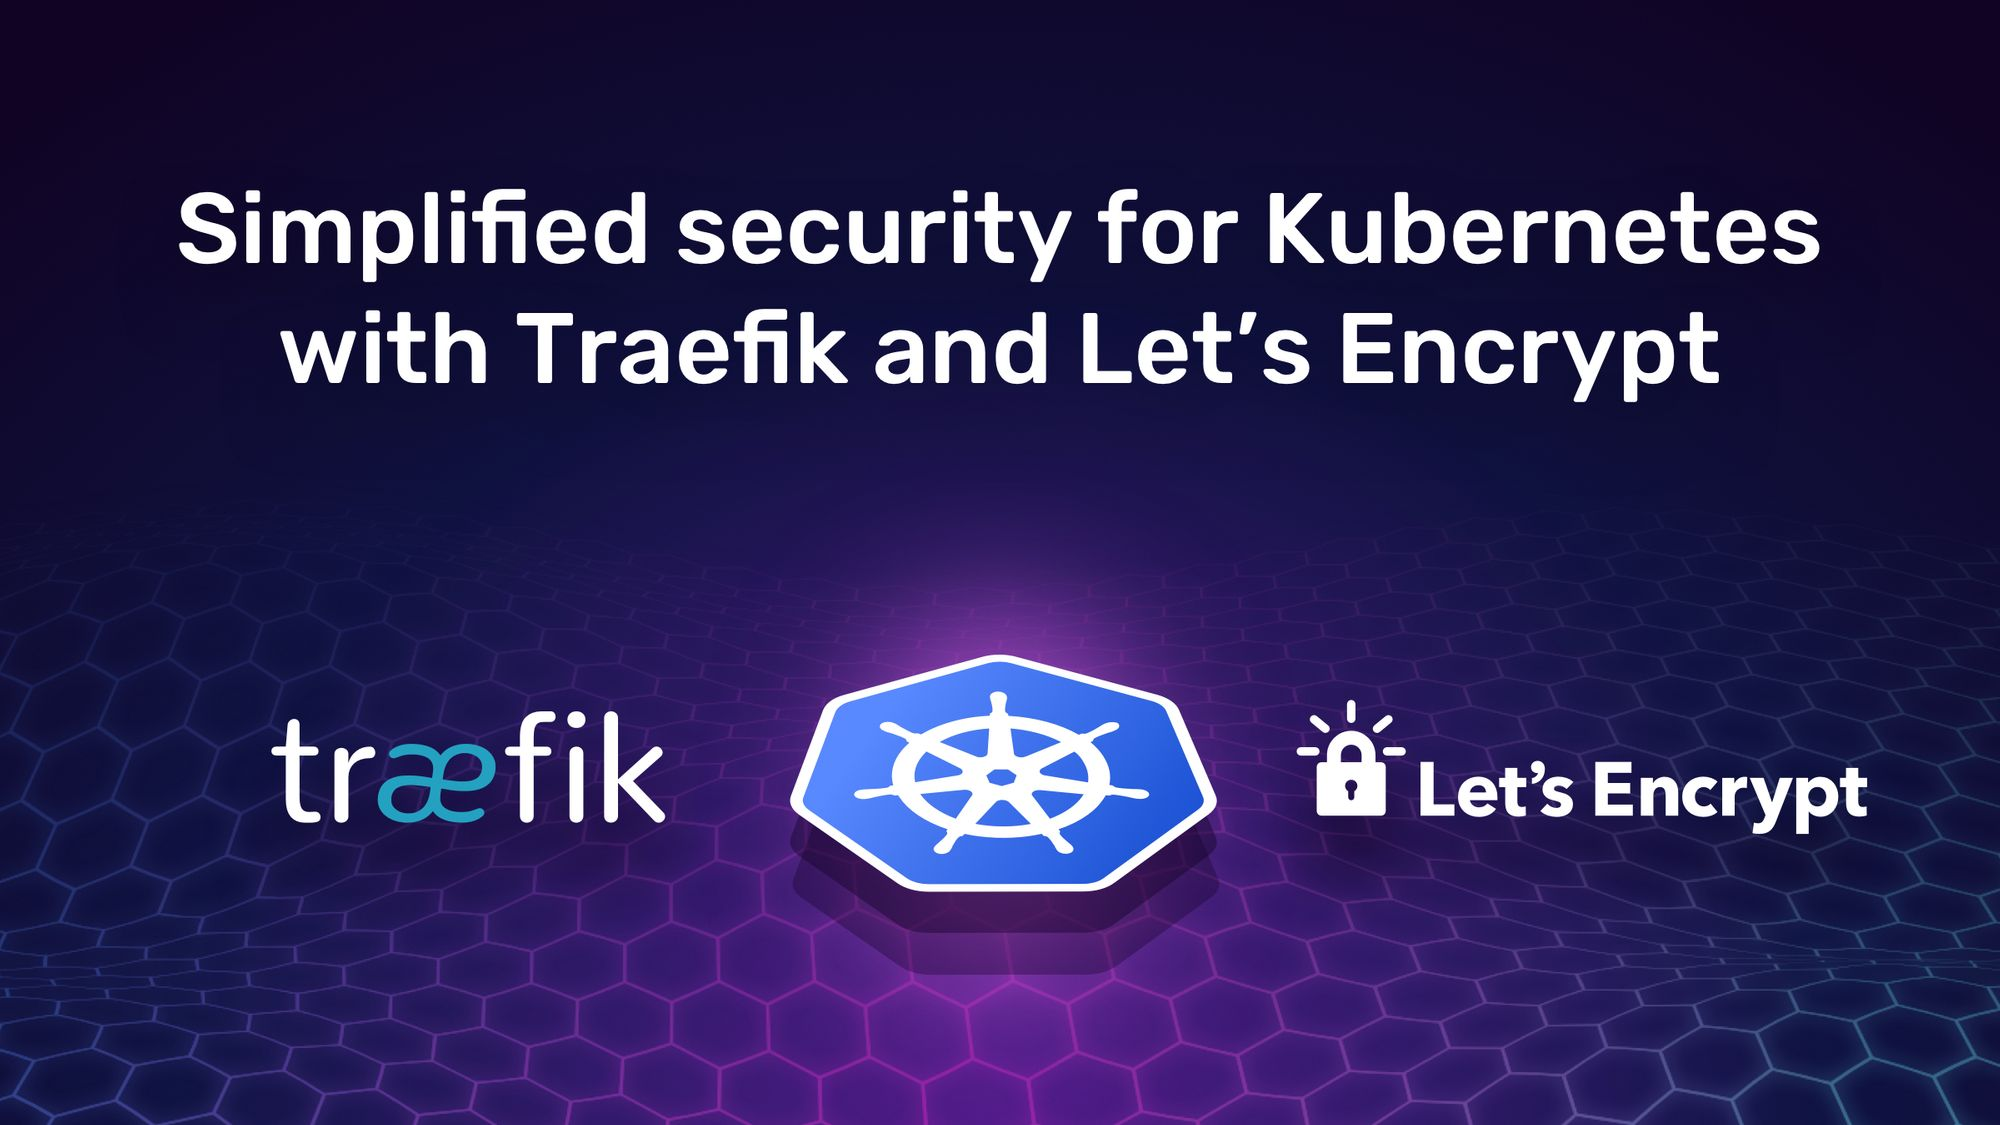 Simplified security for Kubernetes with Traefik and Let's Encrypt